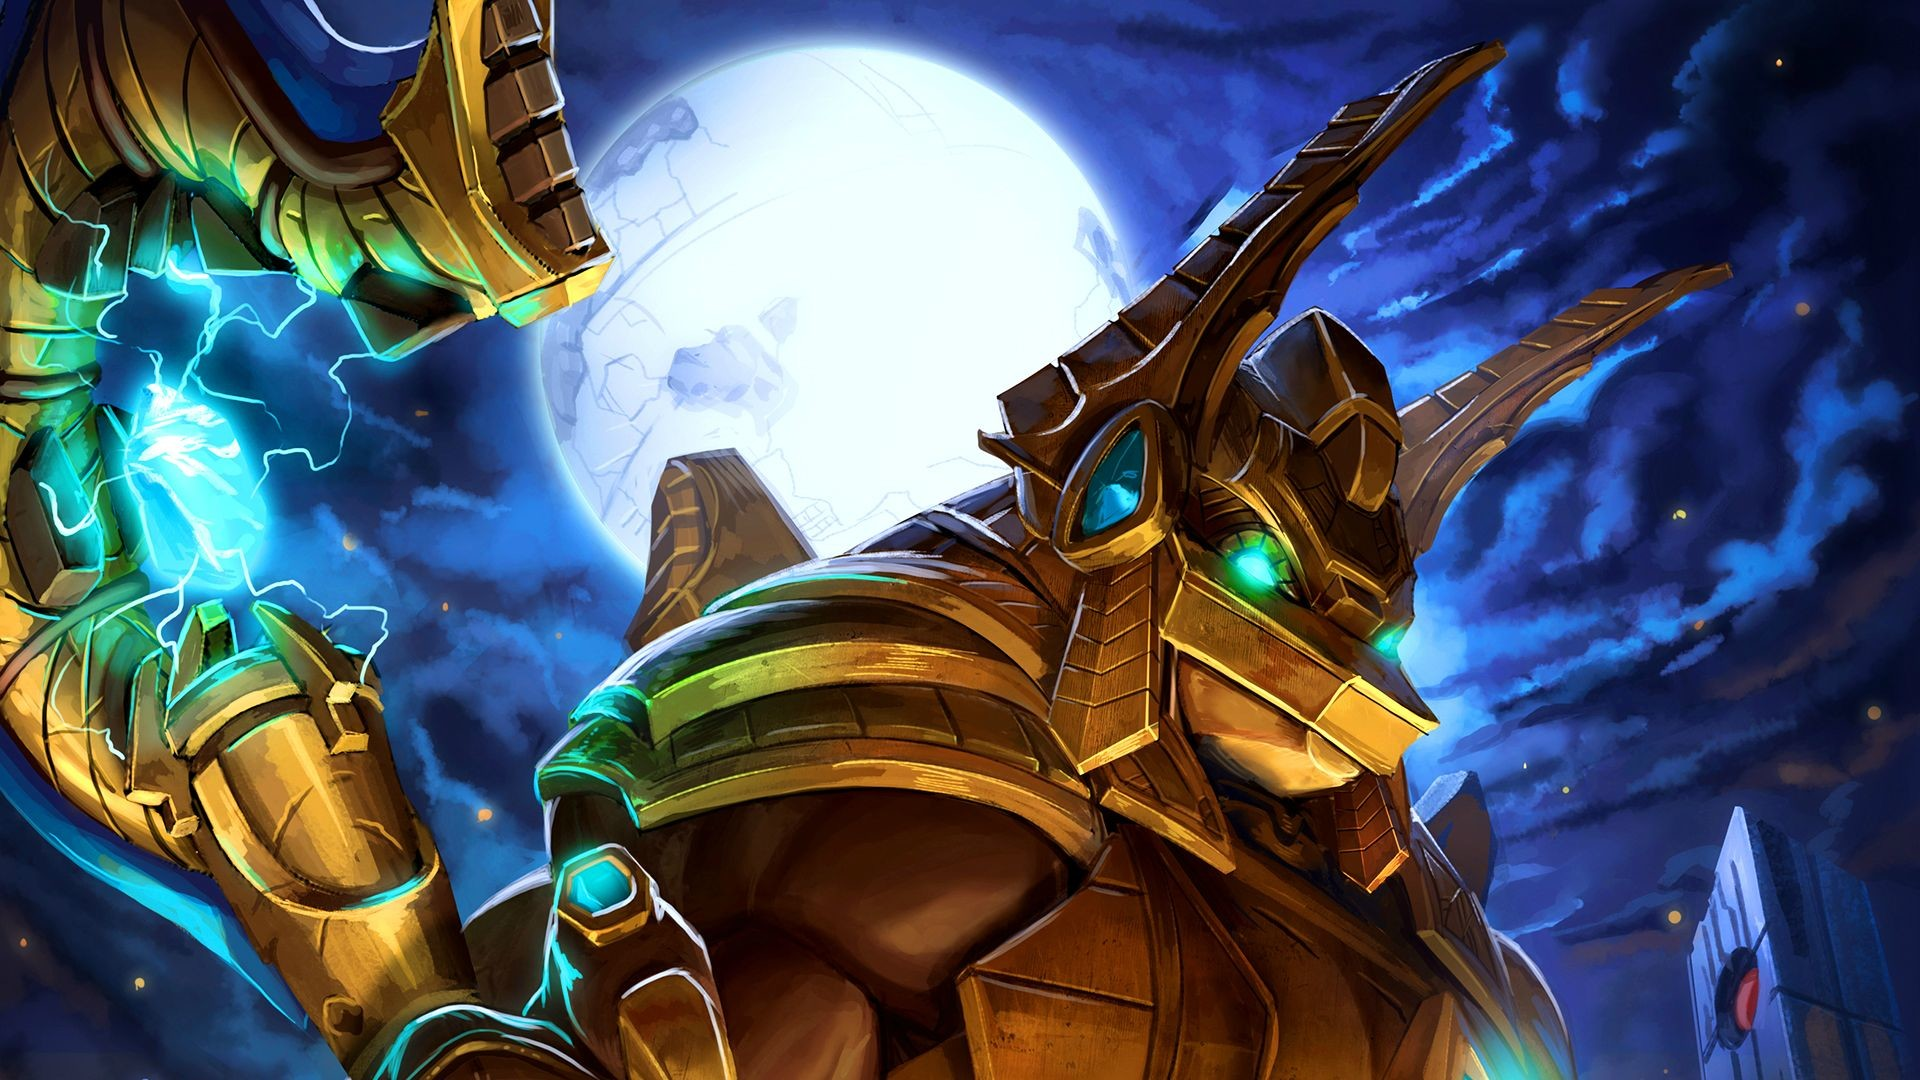 … something today and I hope this build works very well in ranked games  tell me if anything needs to be changed. Good Day and I will Smite on as  Anubis!